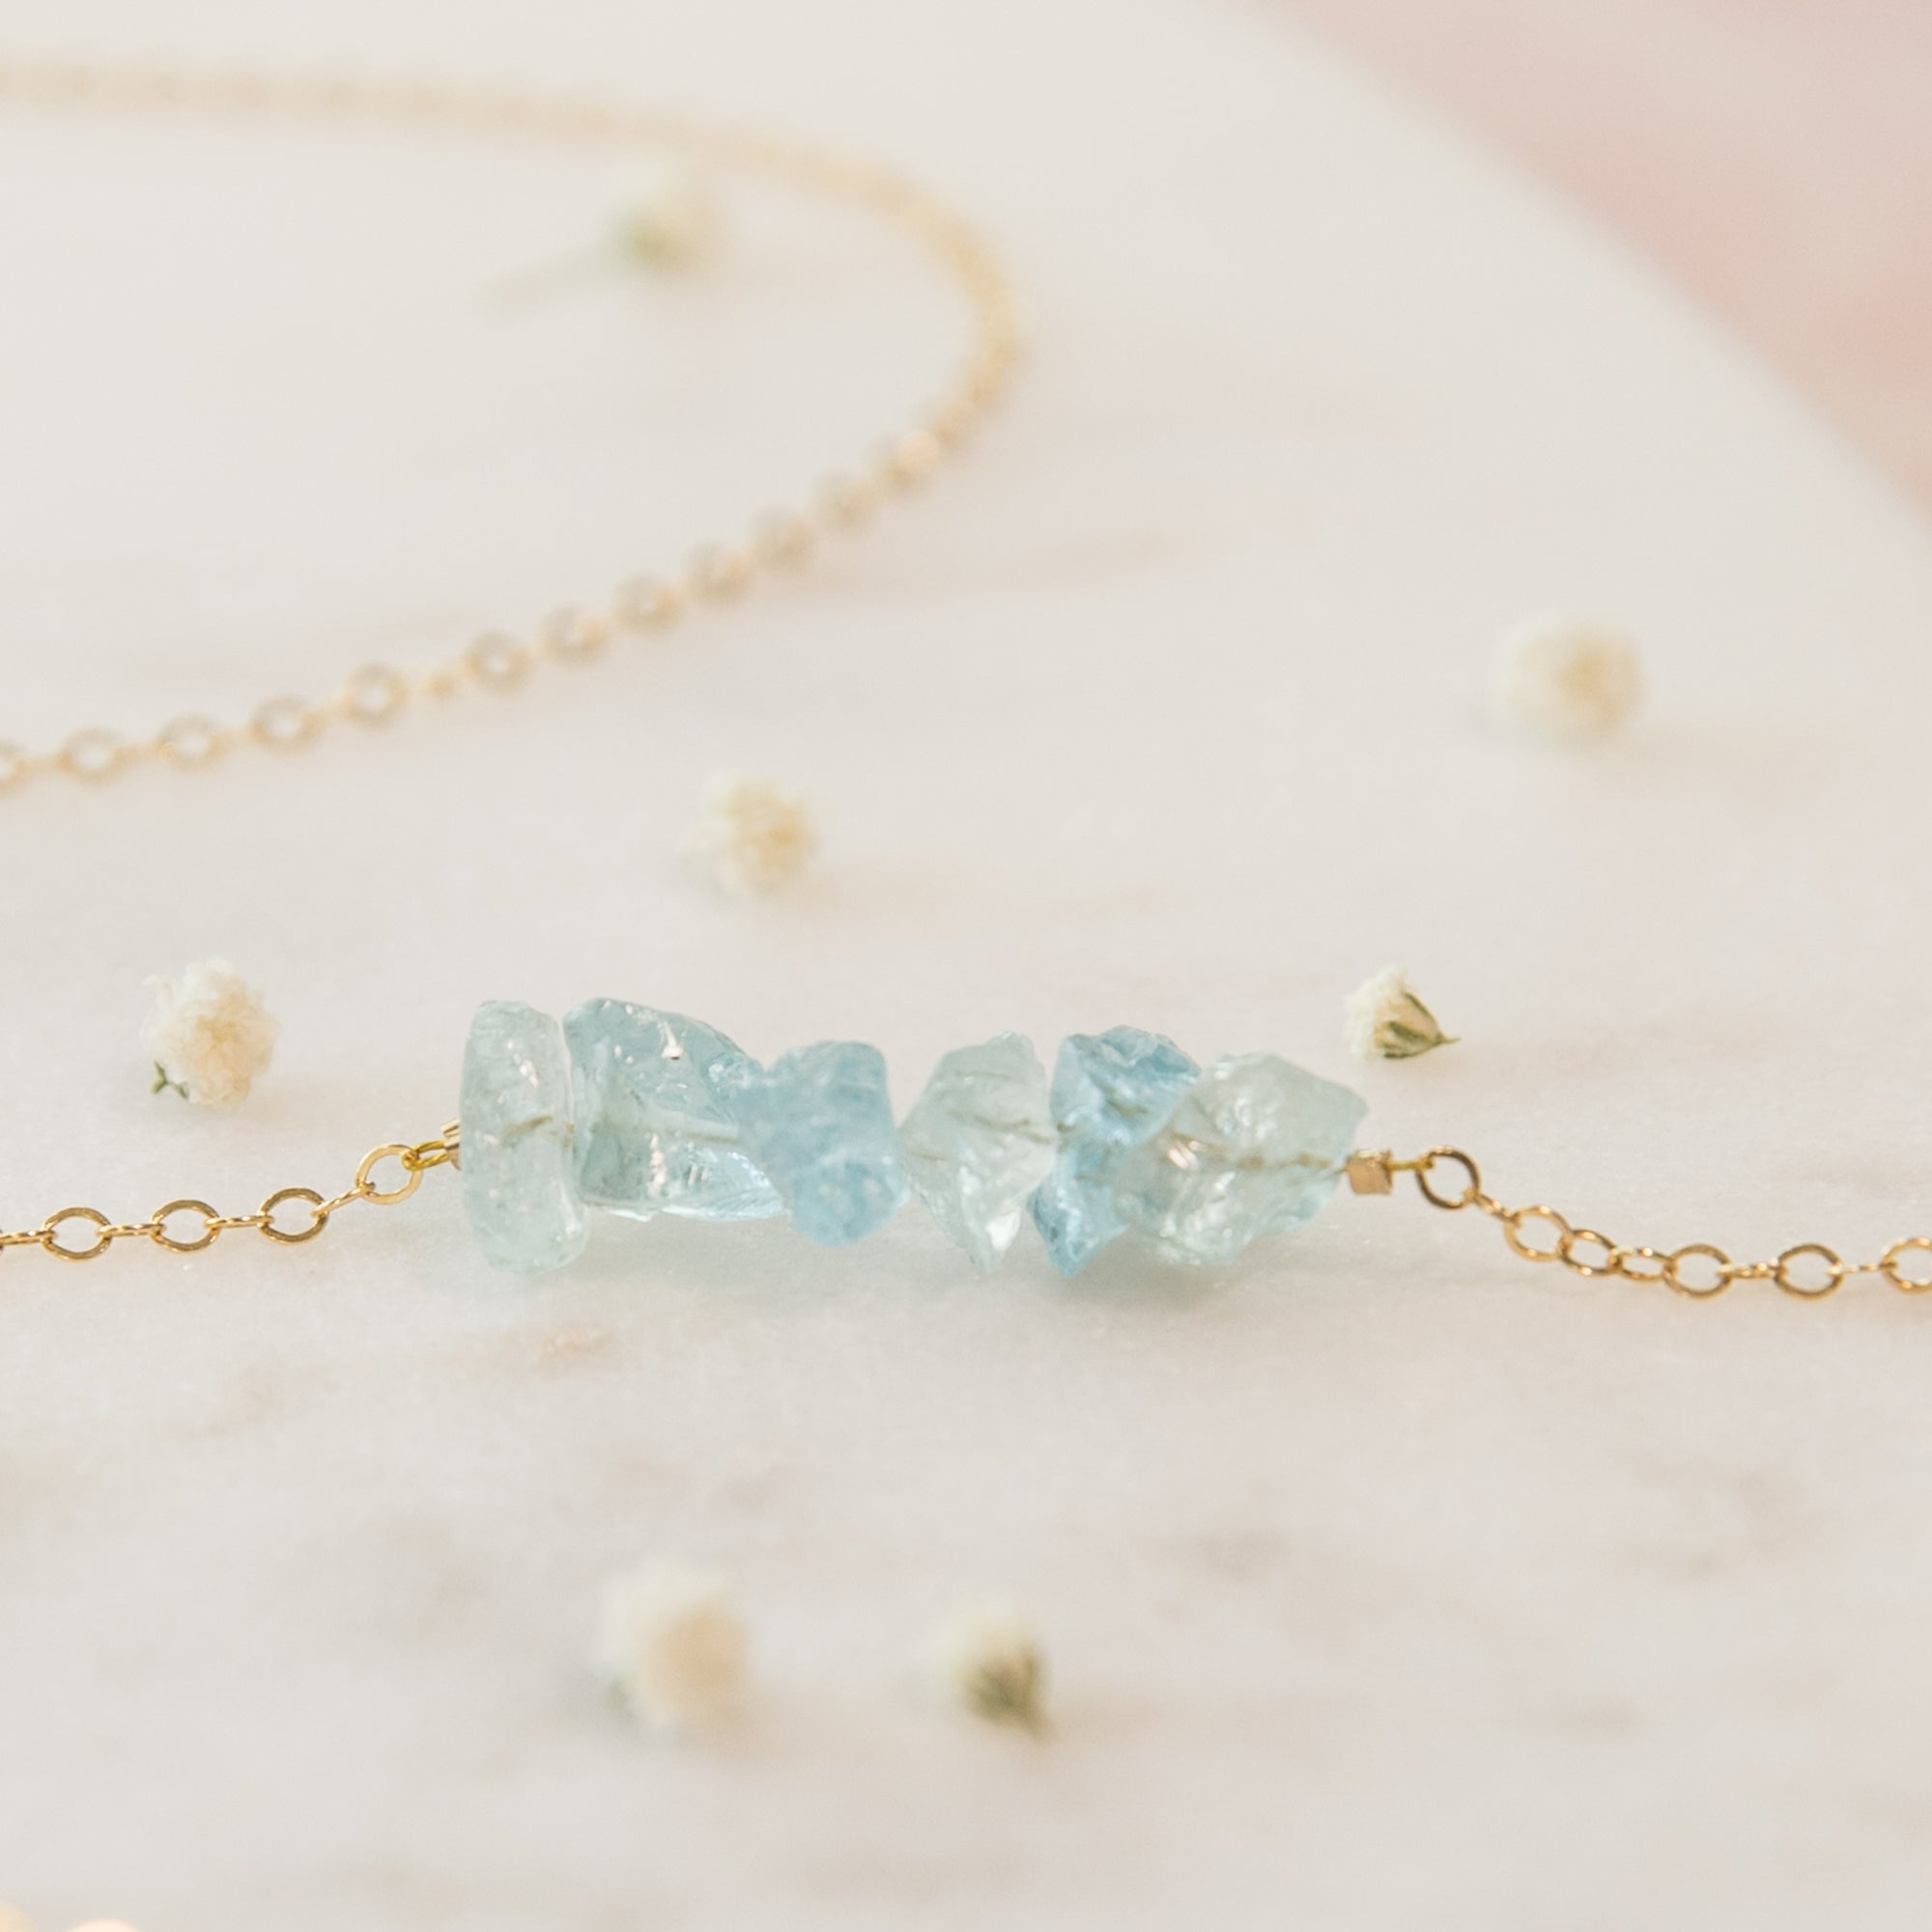 Raw Aquamarine Anklet, Raw Crystal Necklace, Raw Gemstone Anklet, Raw Crystal Jewelry, Aquamarine Anklet, Aquamarine Row Anklet,Something Blue, Something Blue For Wedding, Wedding Jewelry, Bridal Party Anklet, Dainty Anklet, Mermaid Anklet, Aquamarine Bar Anklet, Crystal Anklet, Liz.Beth Jewelry Co.